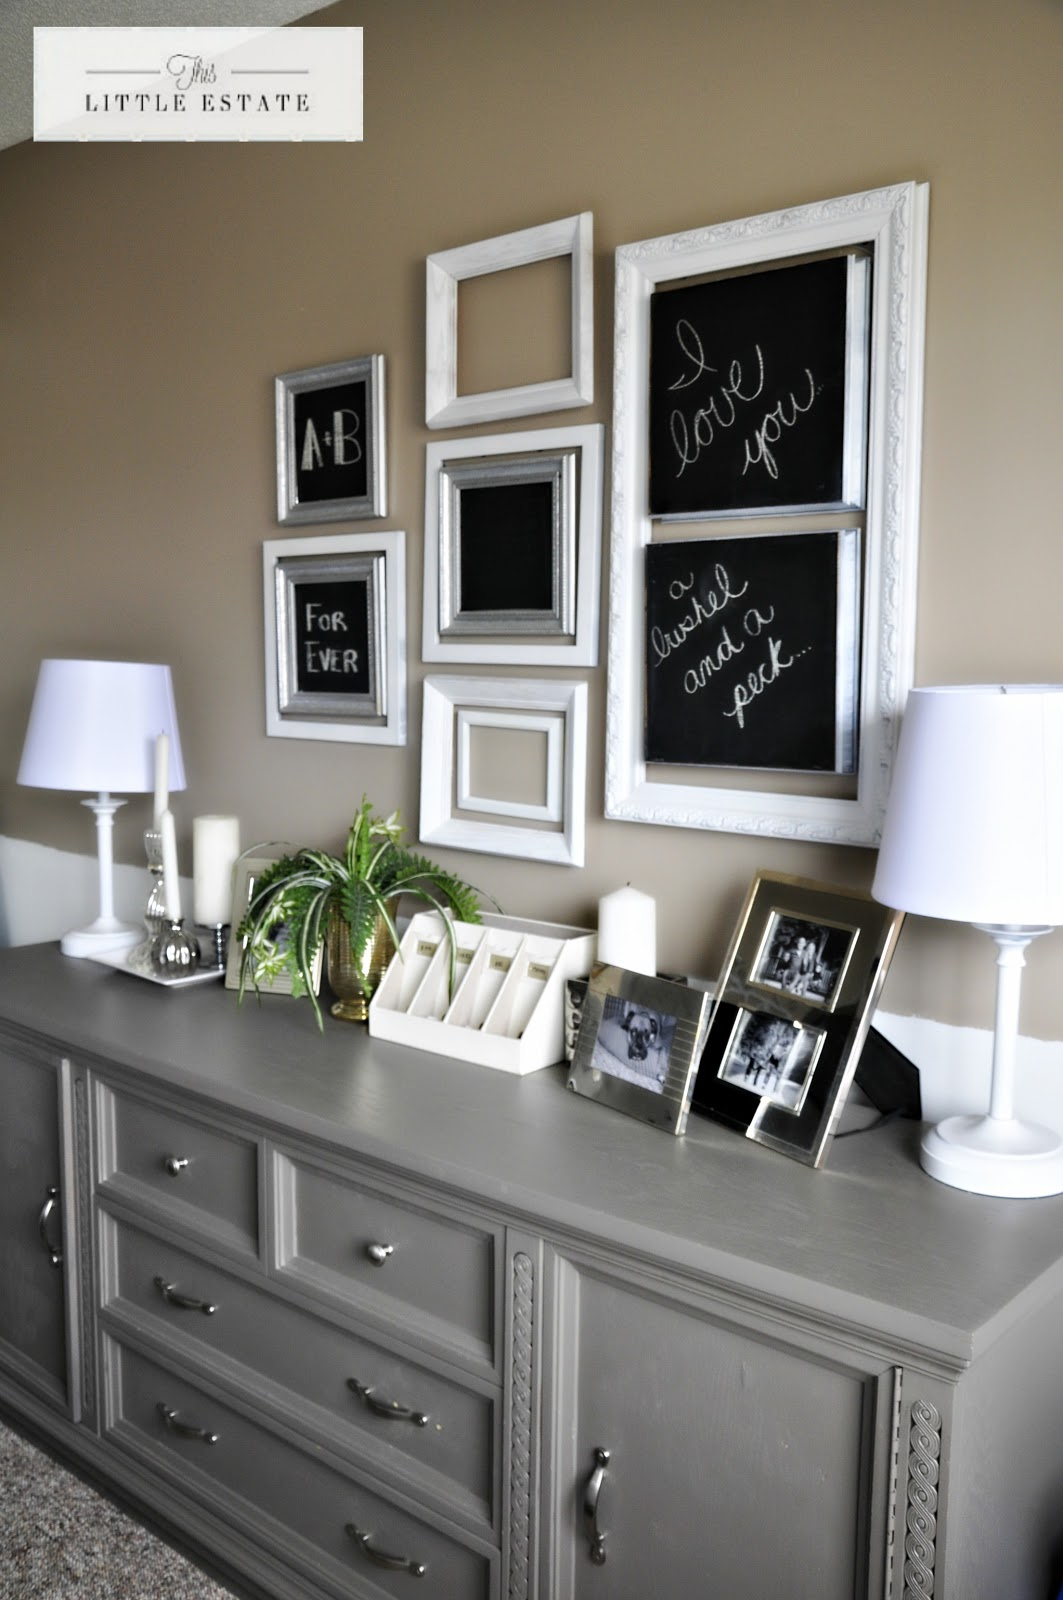 Master bedroom furniture redo this little estate - How to decorate a dresser in bedroom ...